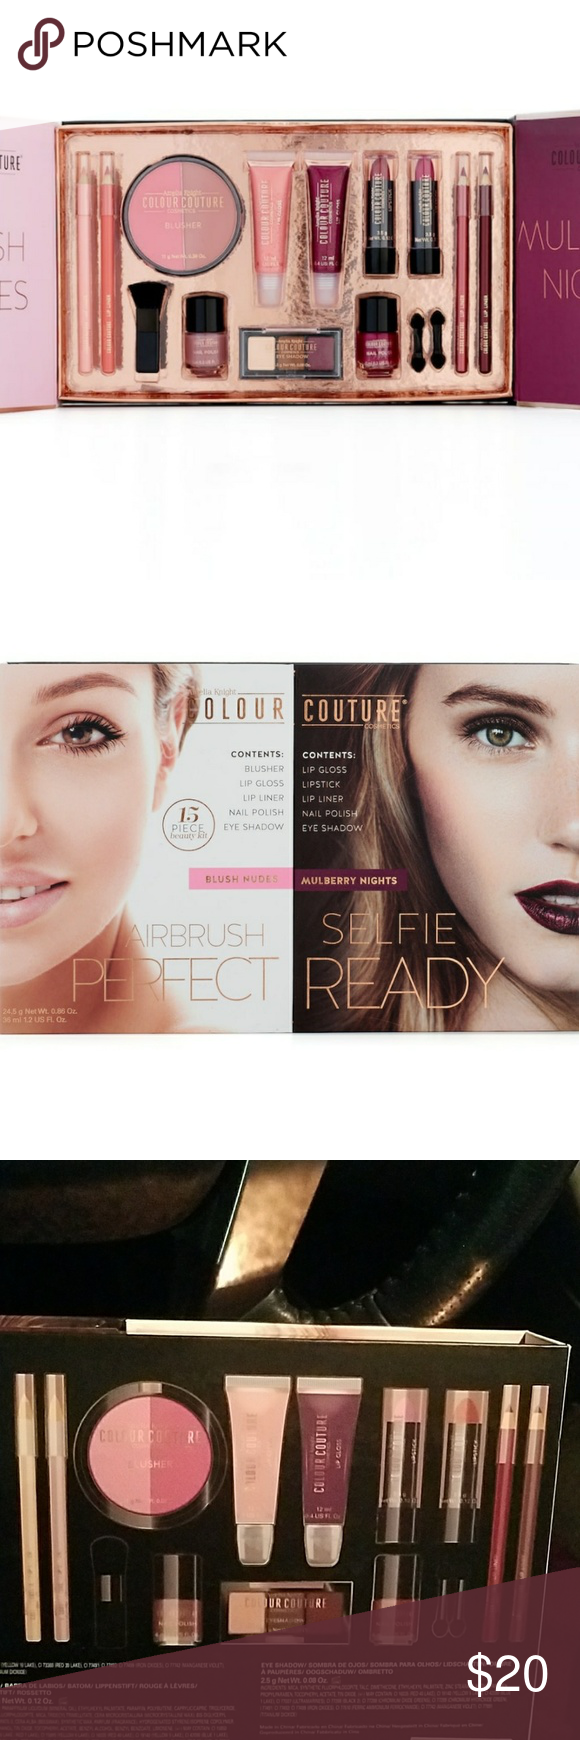 Amelia Knight Color Couture makeup kit. NWT Couture